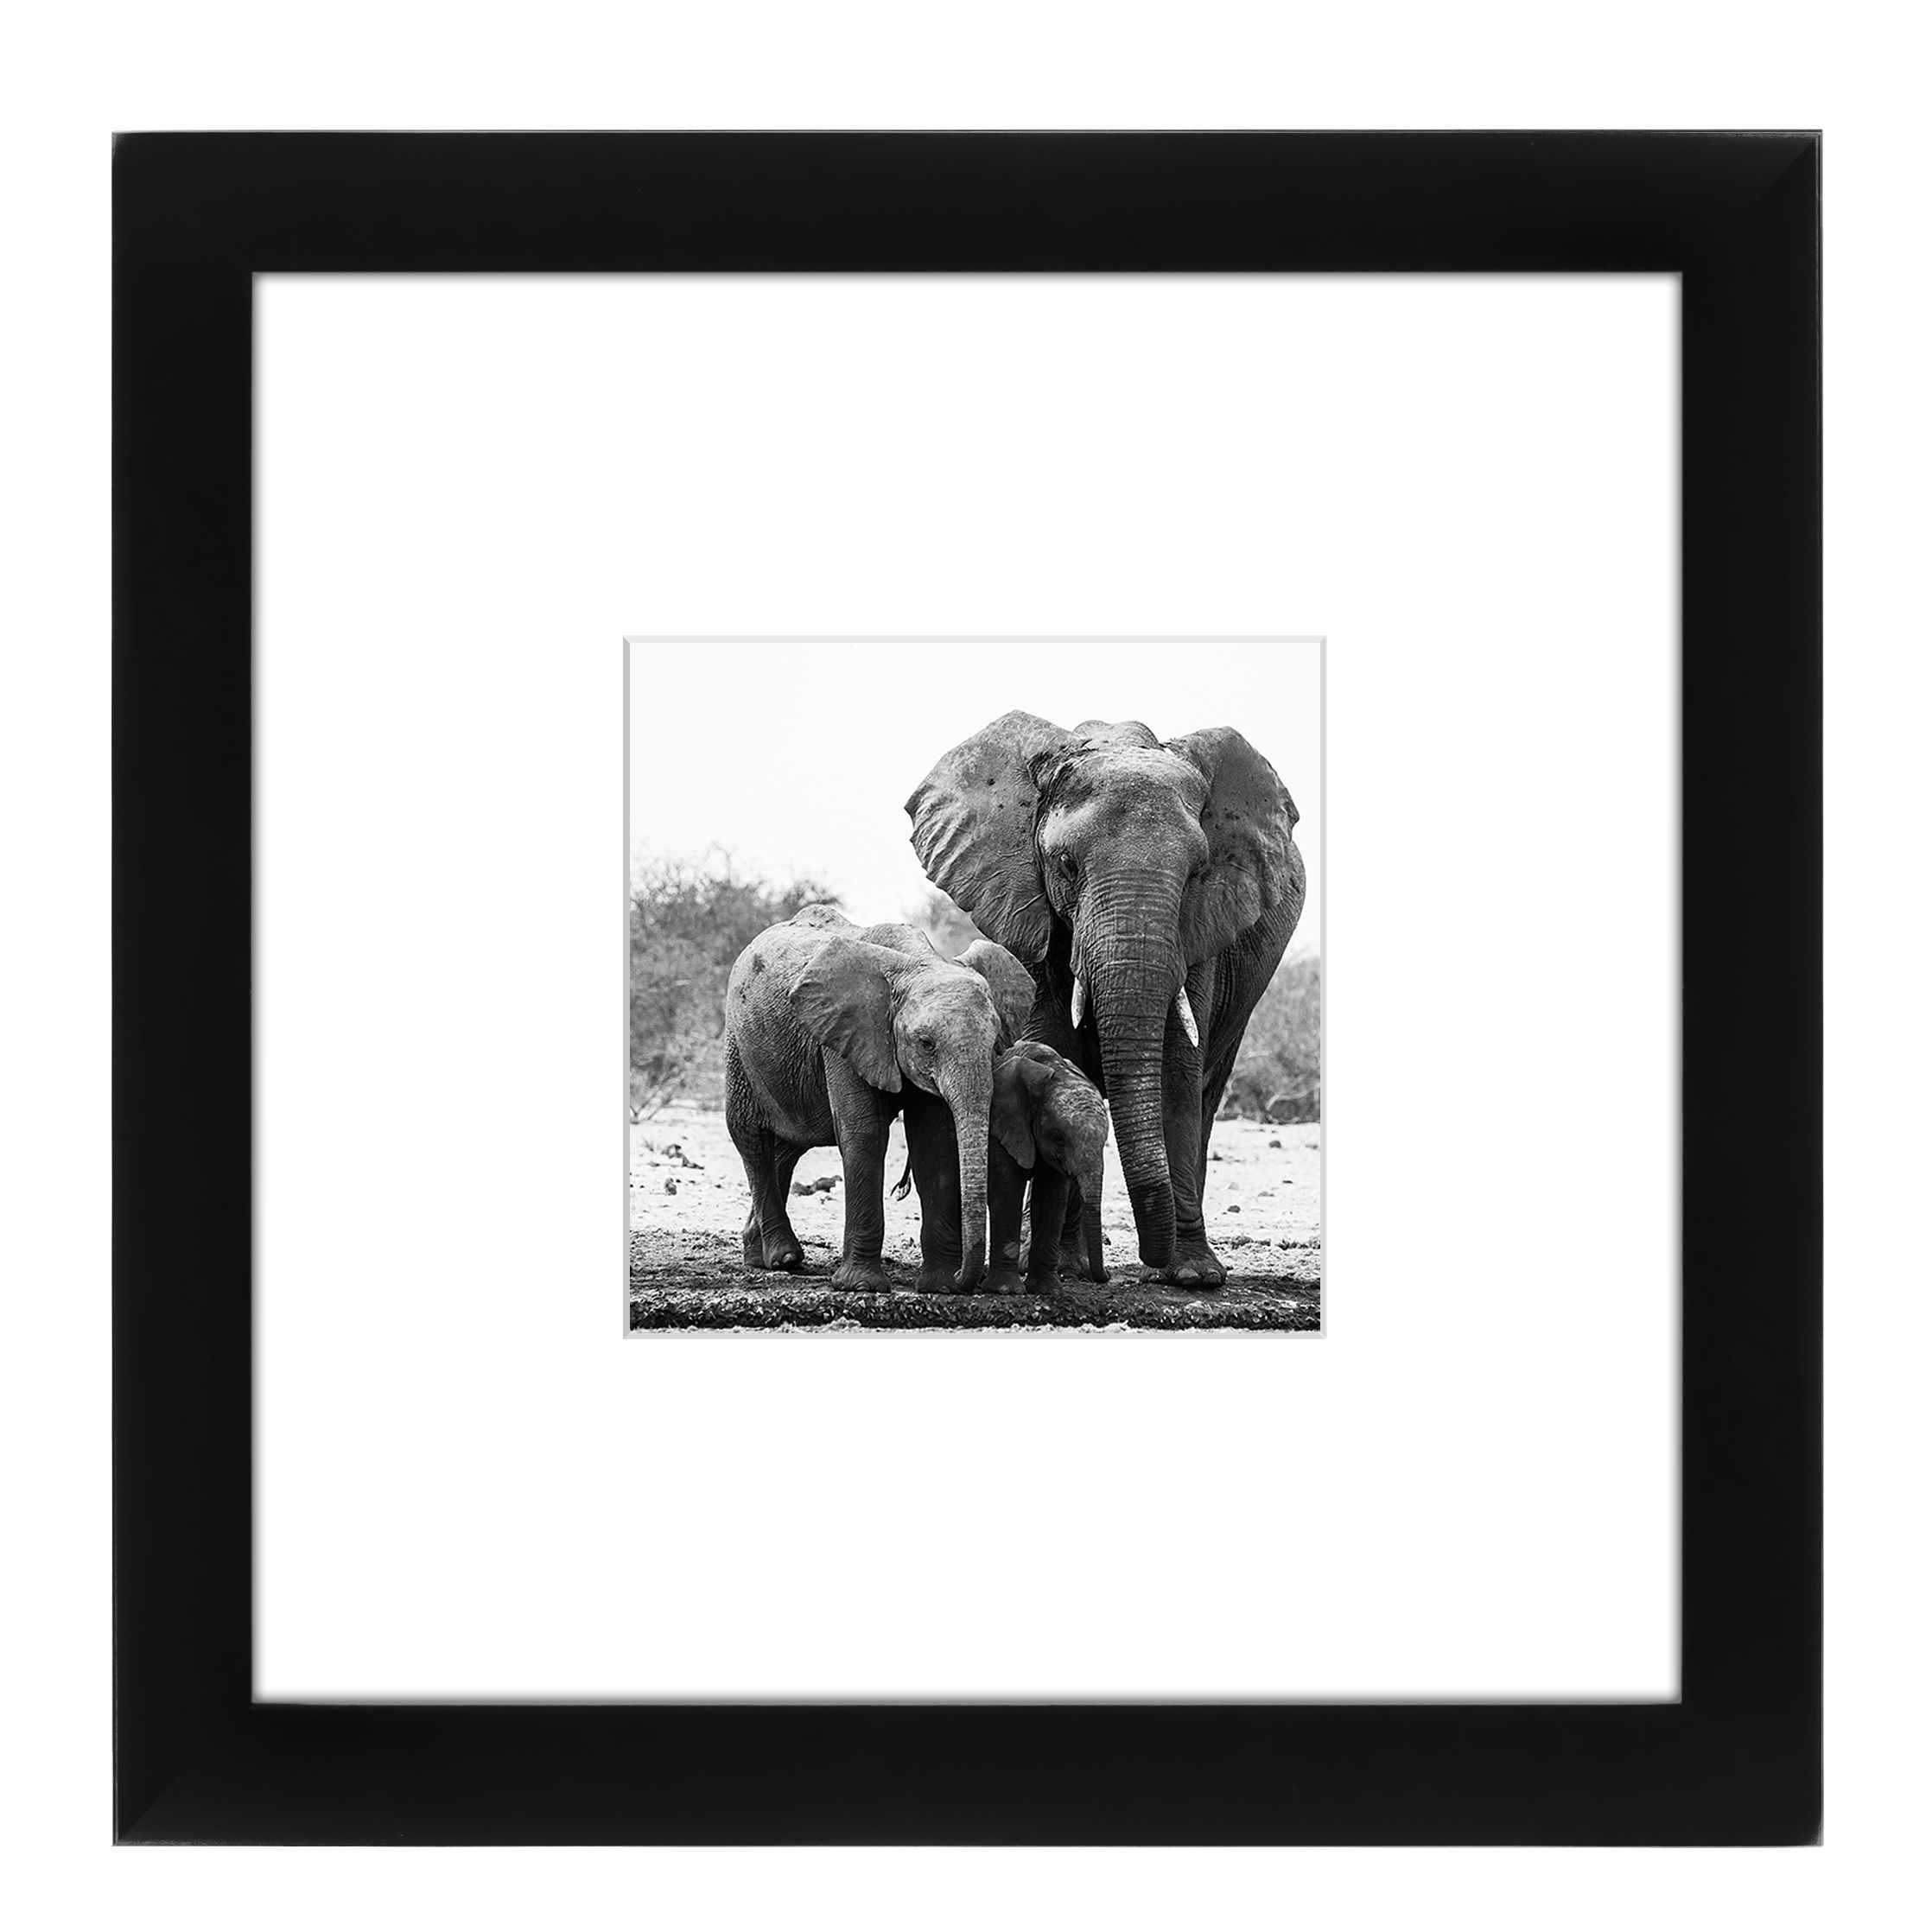 Americanflat 8 x 8-inch Black Picture Frame for 4 x 4-inch Pictures ...